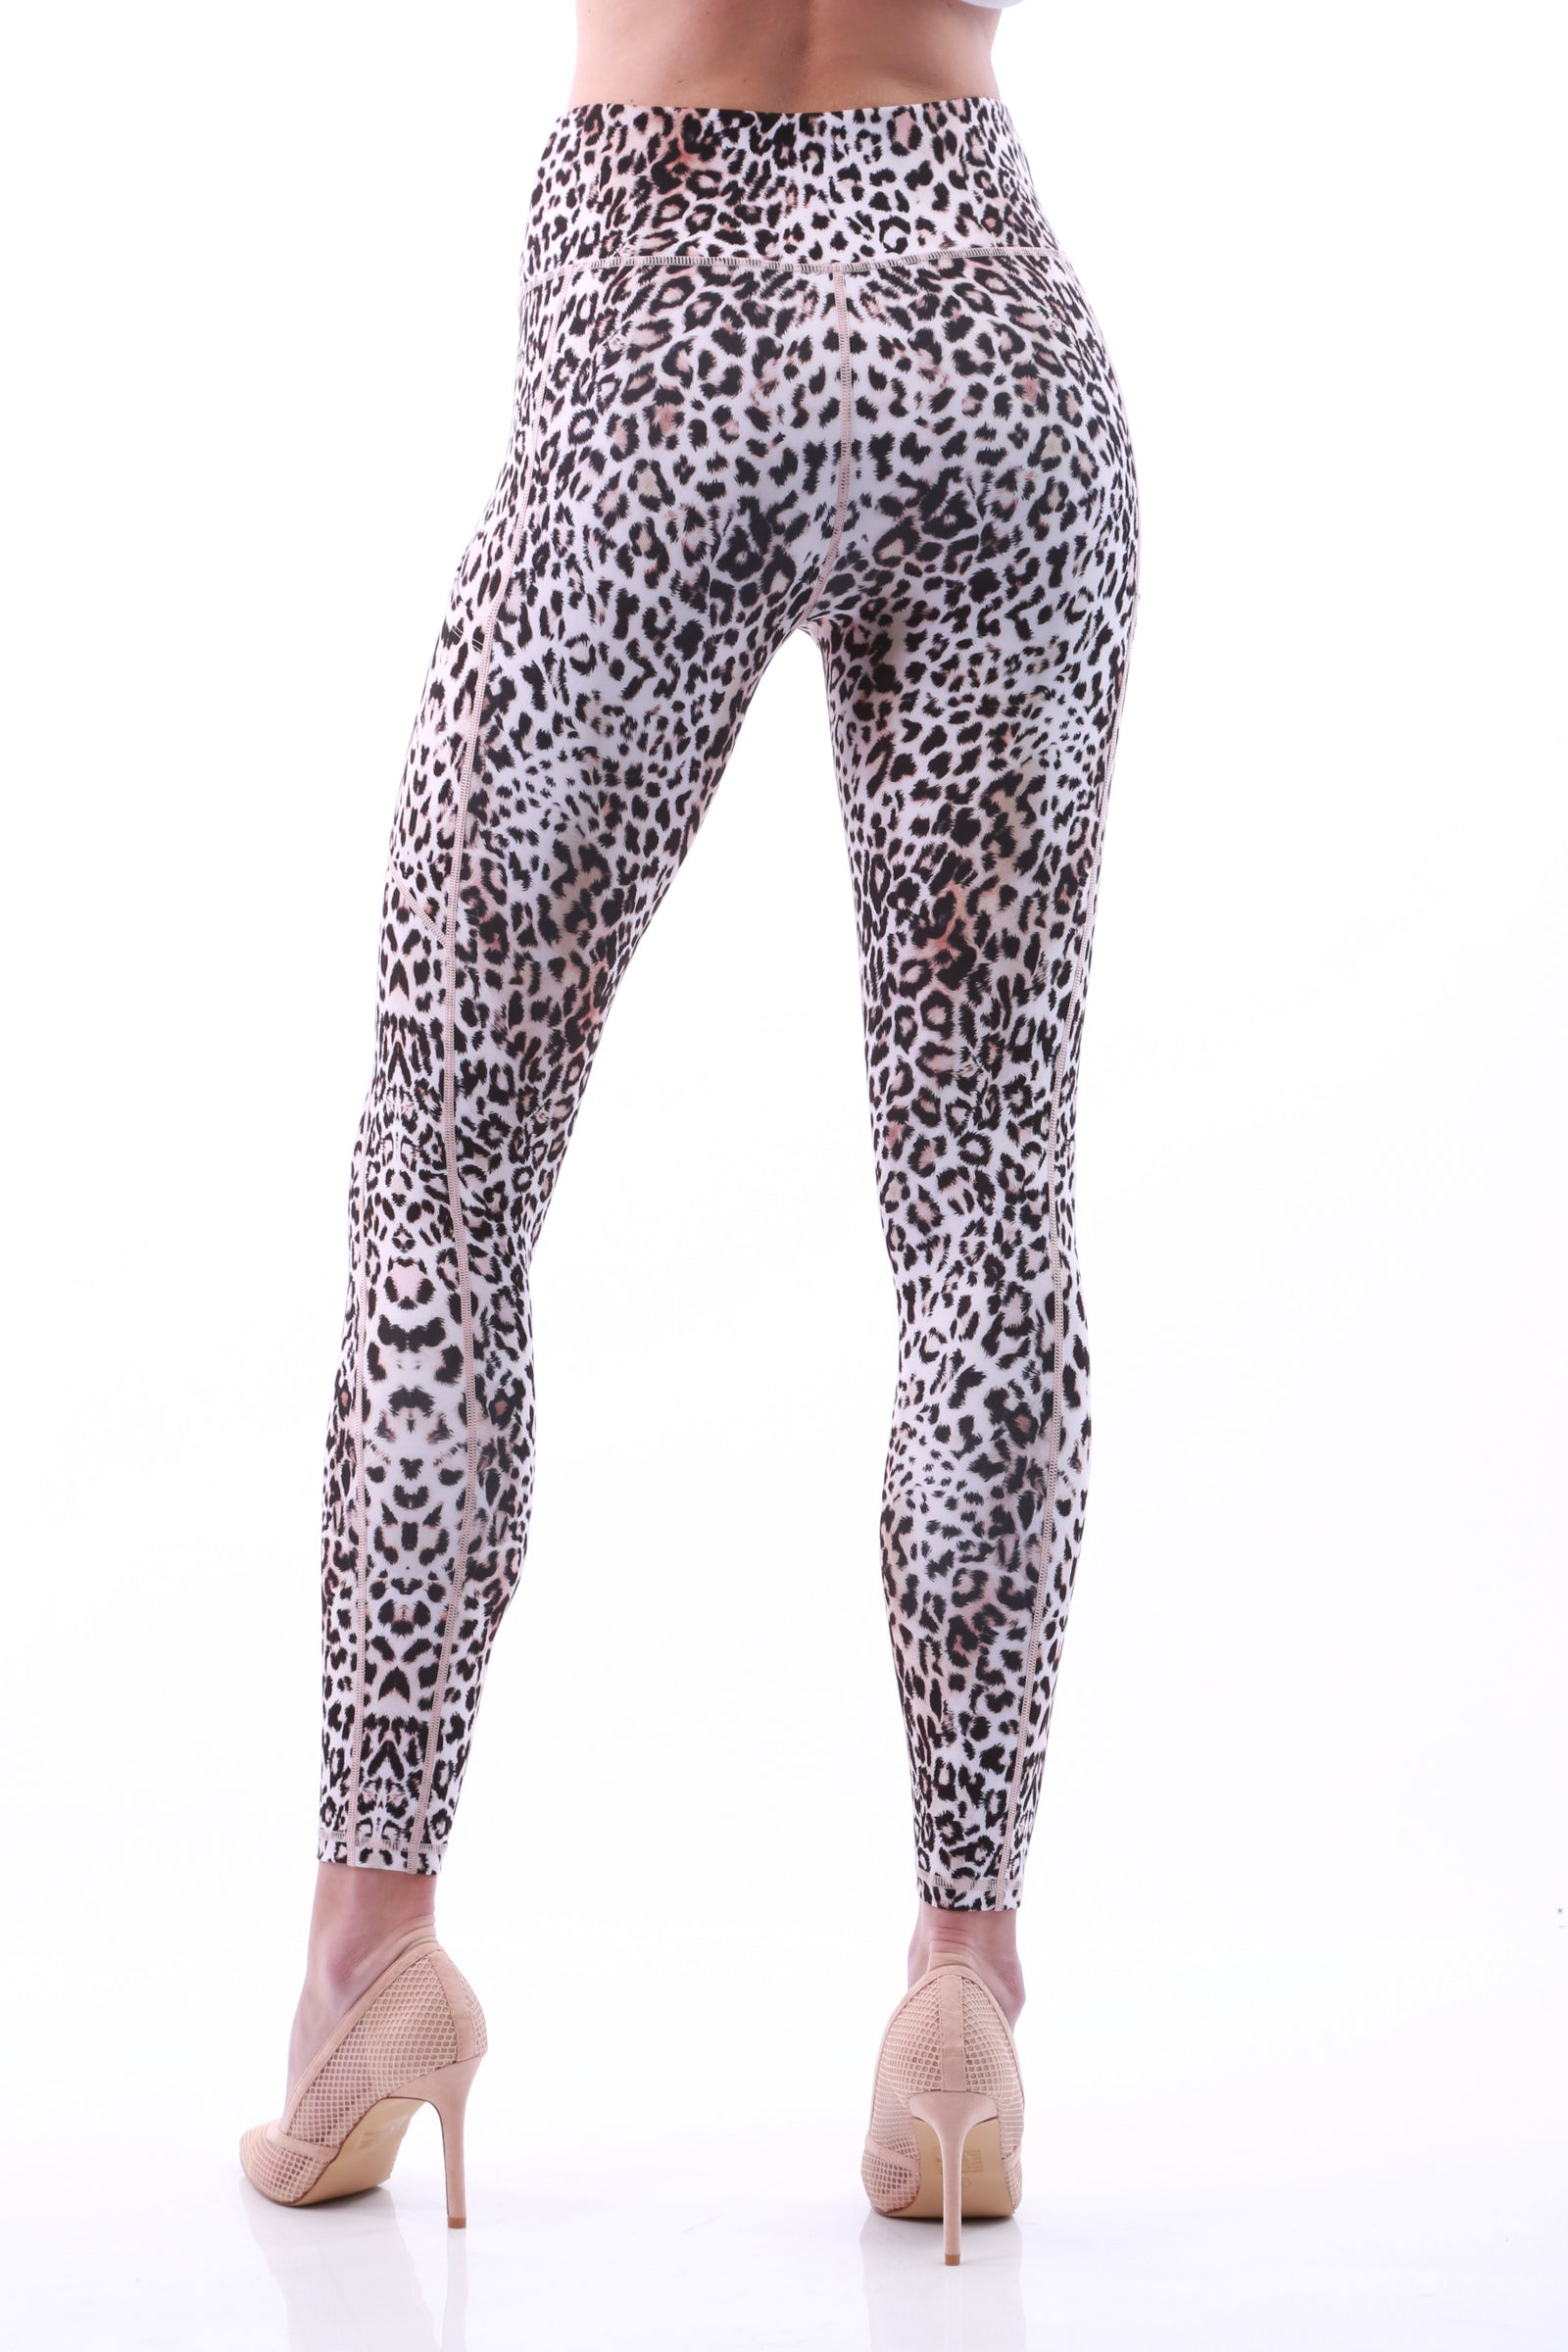 Image of GNT Leggings - Leopard